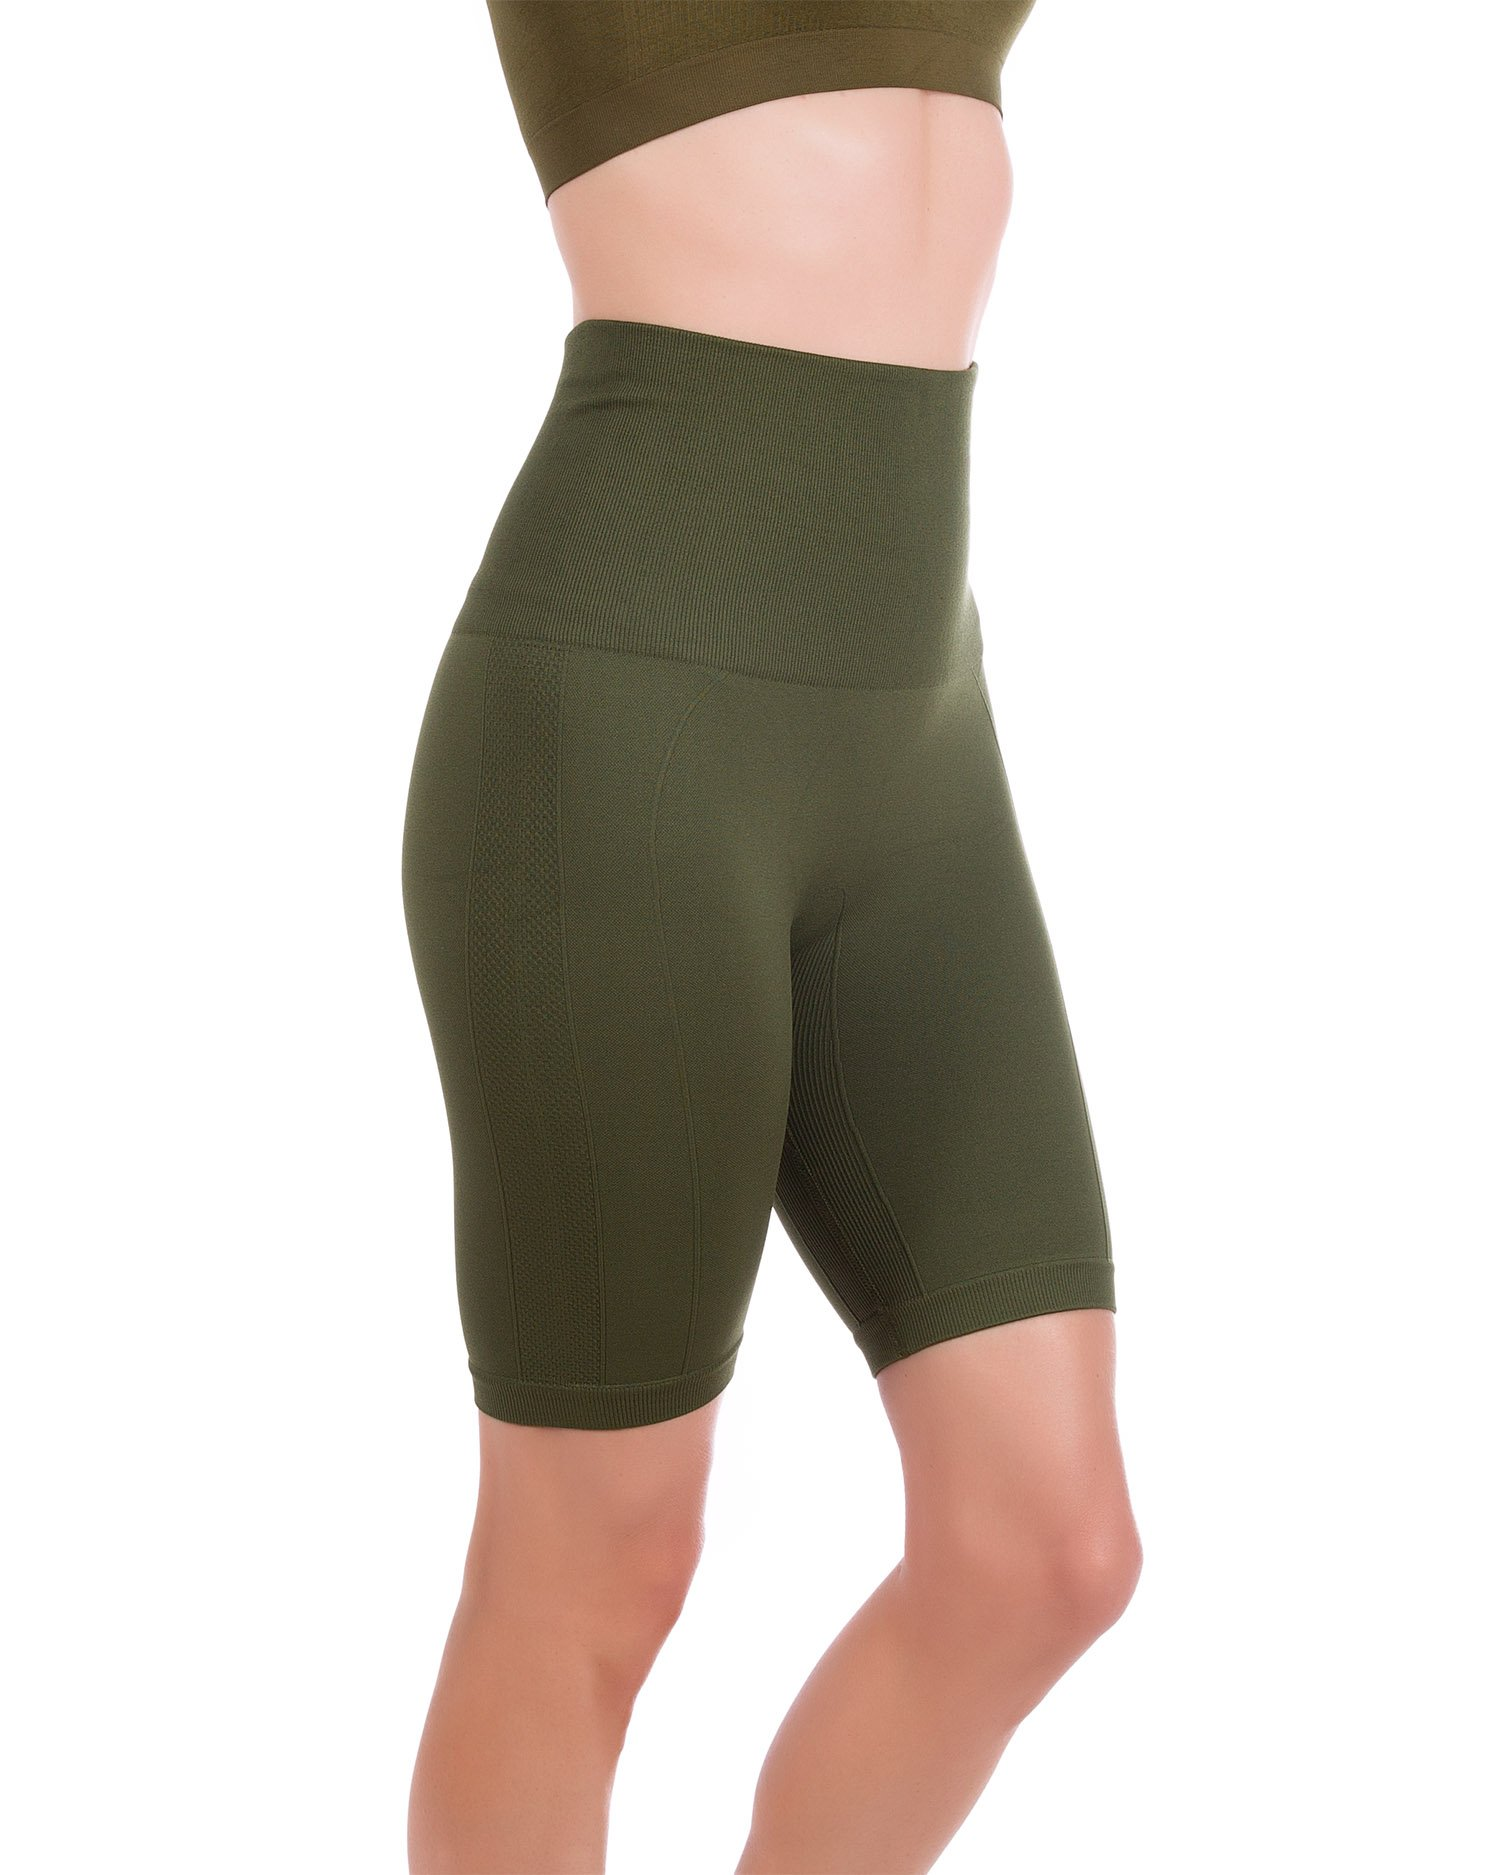 Homma Women's Tummy Control Fitness Workout Running Yoga Shorts (Large, Olive) by Homma